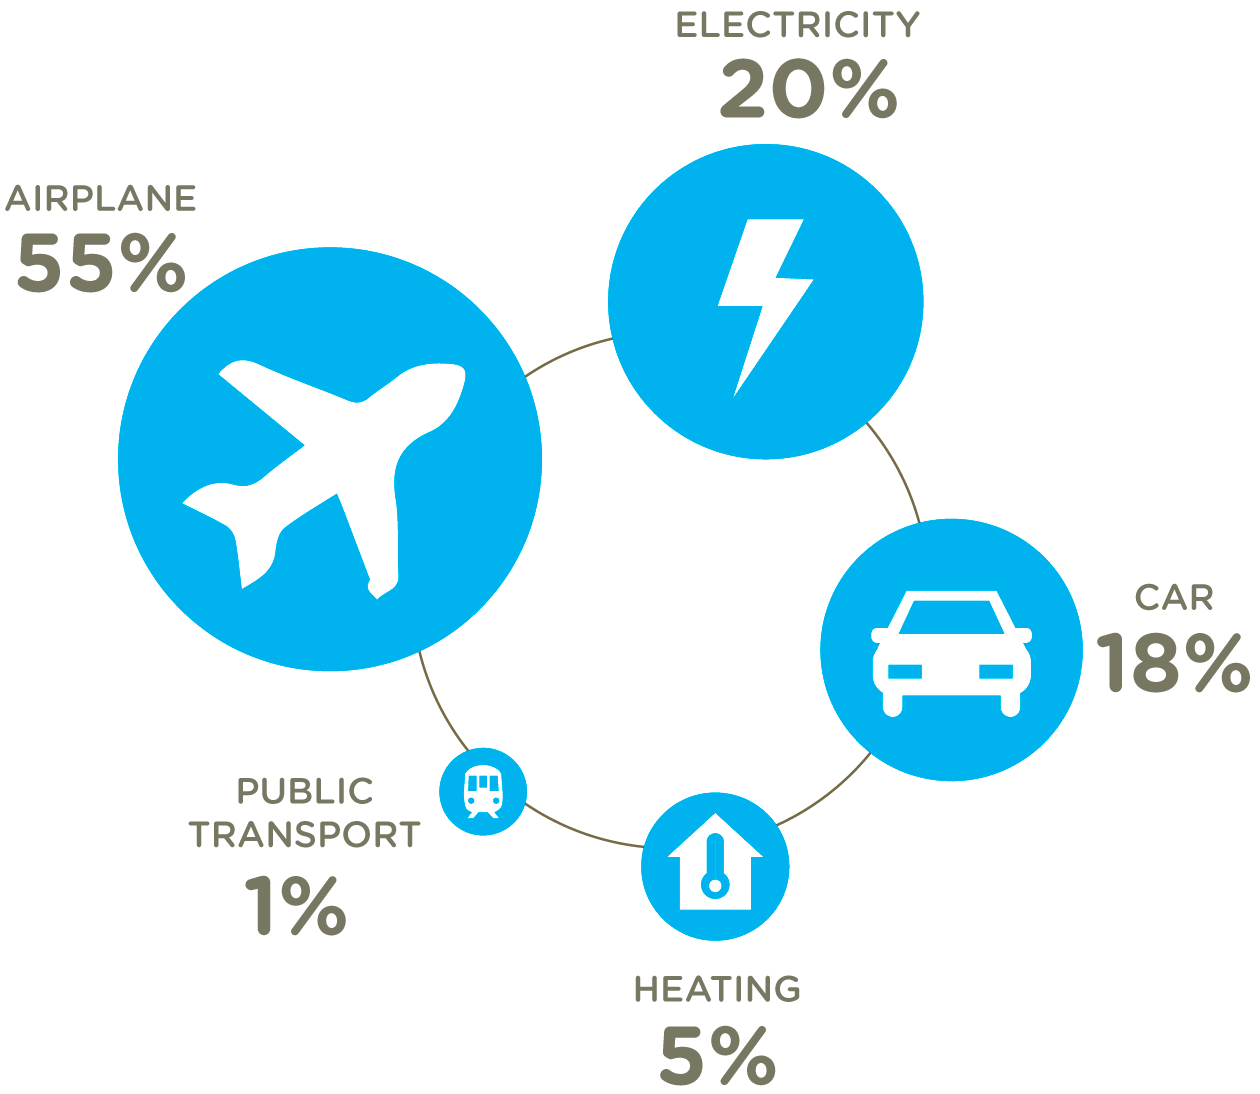 CO2 EMISSIONS FROM ENERGY USE AND WORK-RELATED TRANSPORT